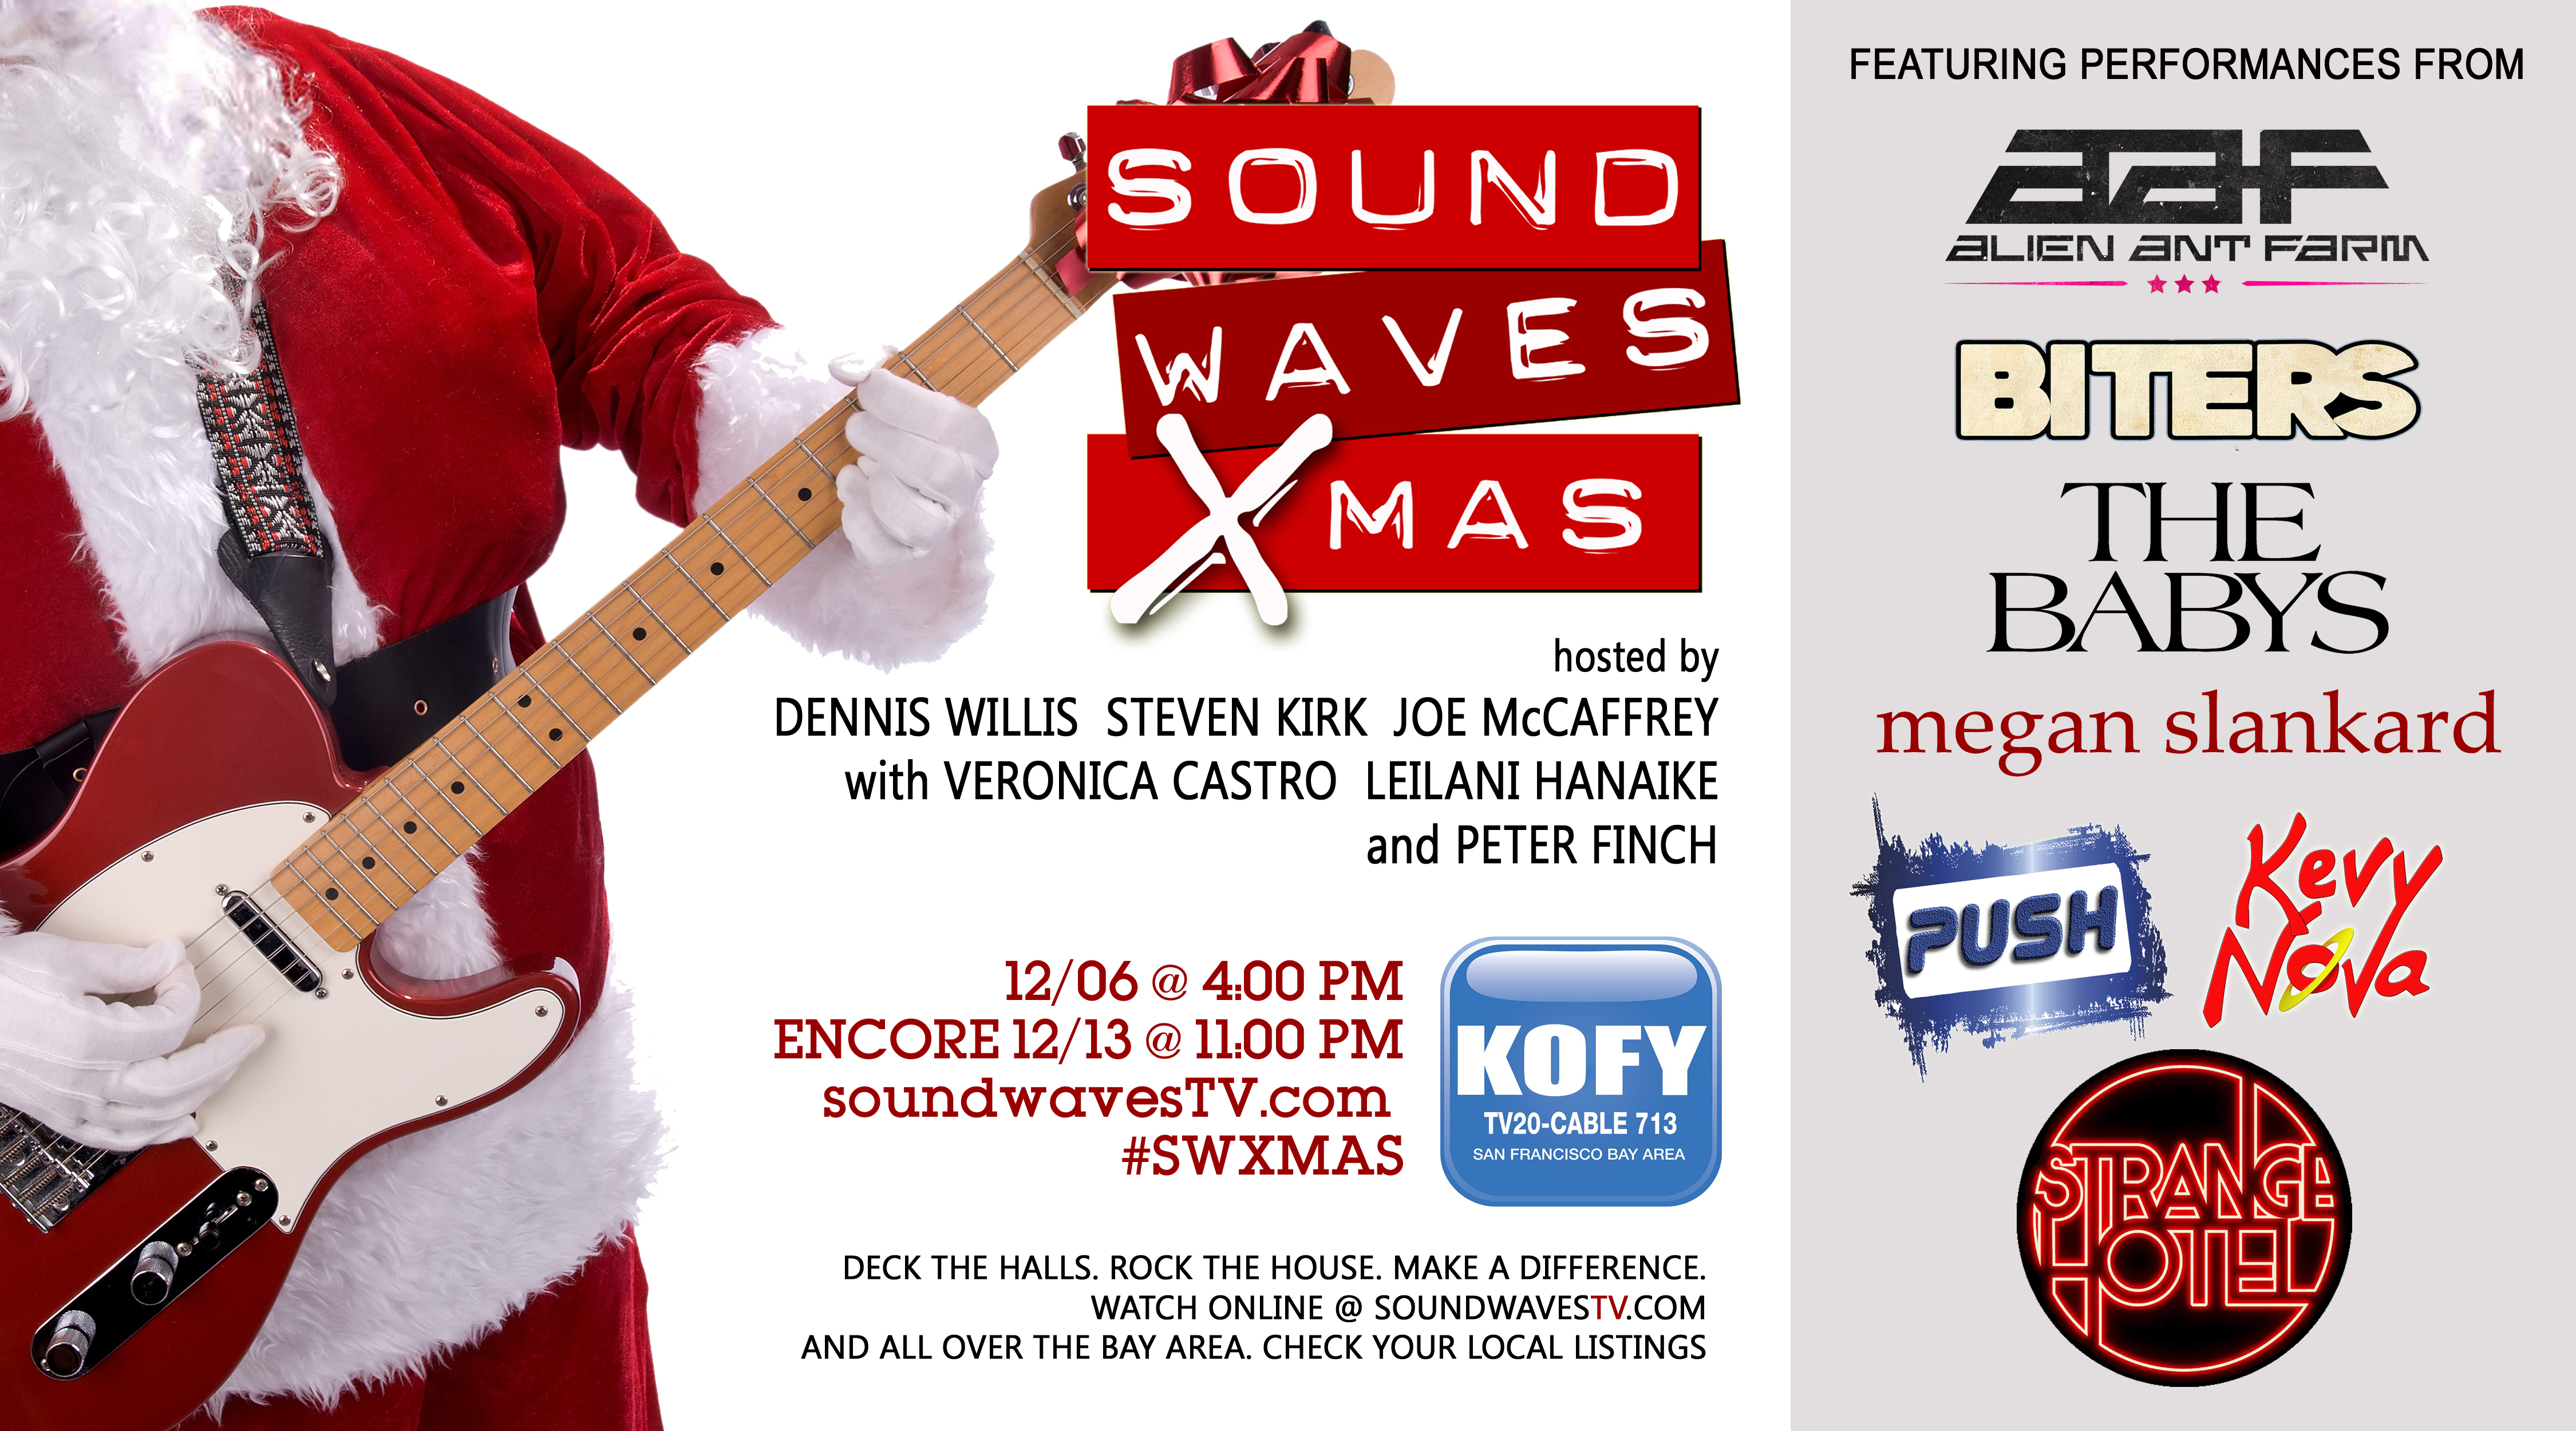 SOUNDWAVES XMAS 2015 to premiere December 6th